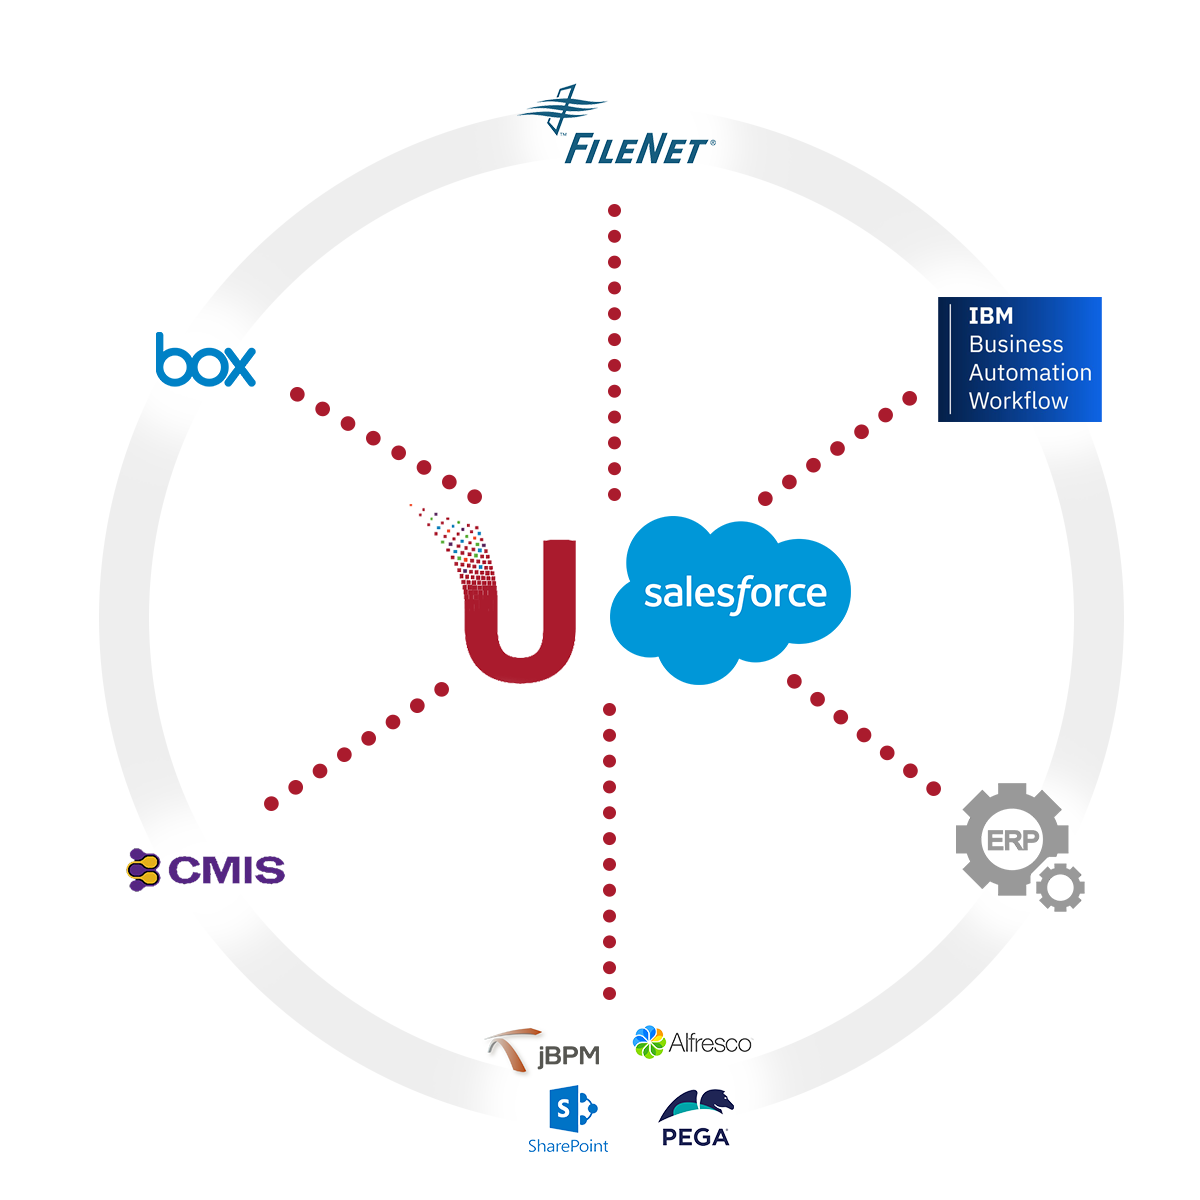 Salesforce diagram